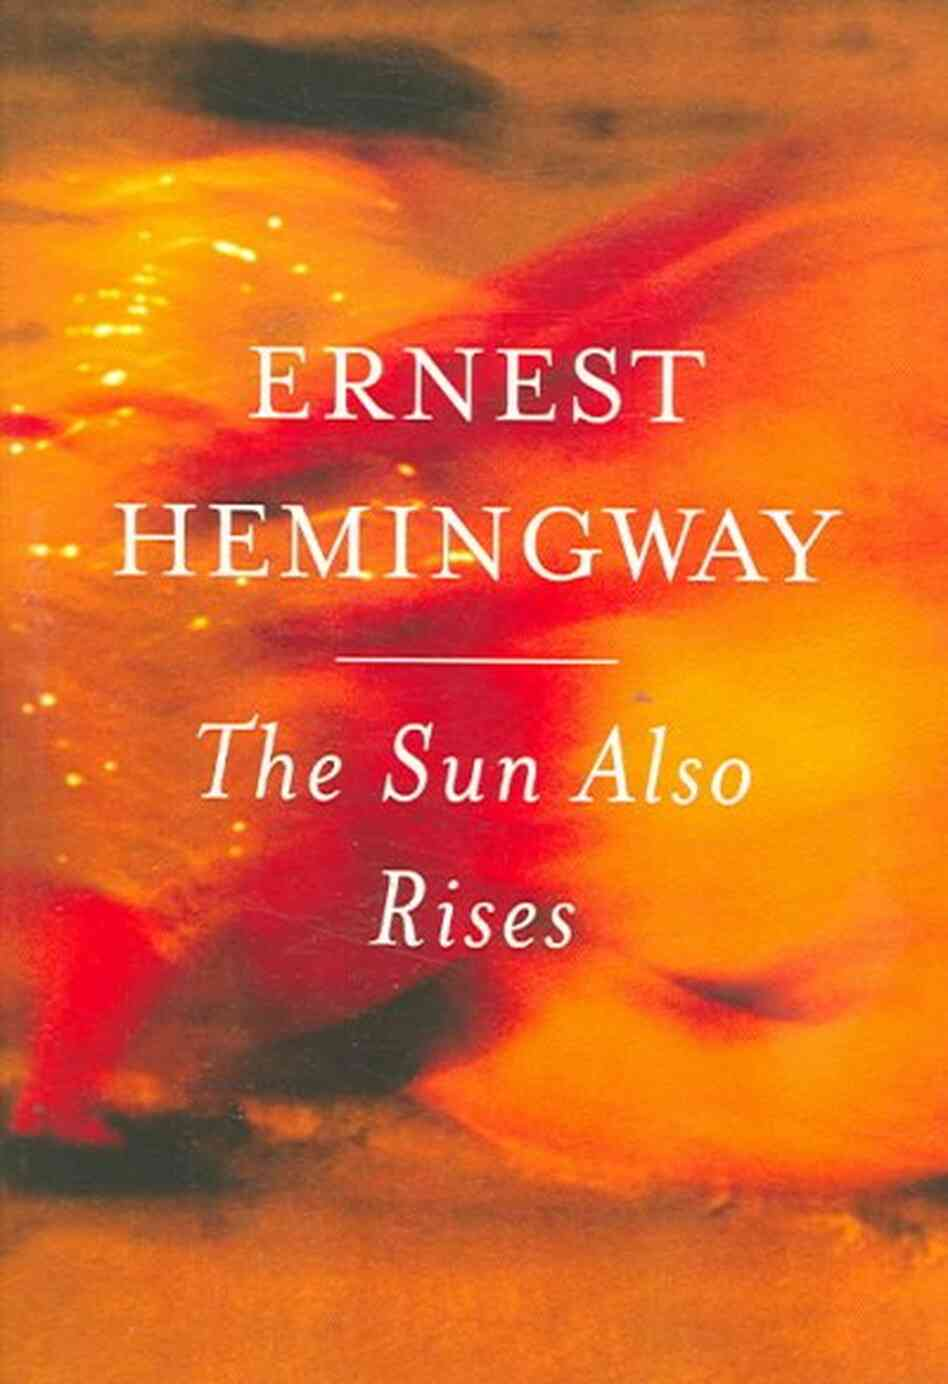 the sun also rises essay the sun also rises best essay writers